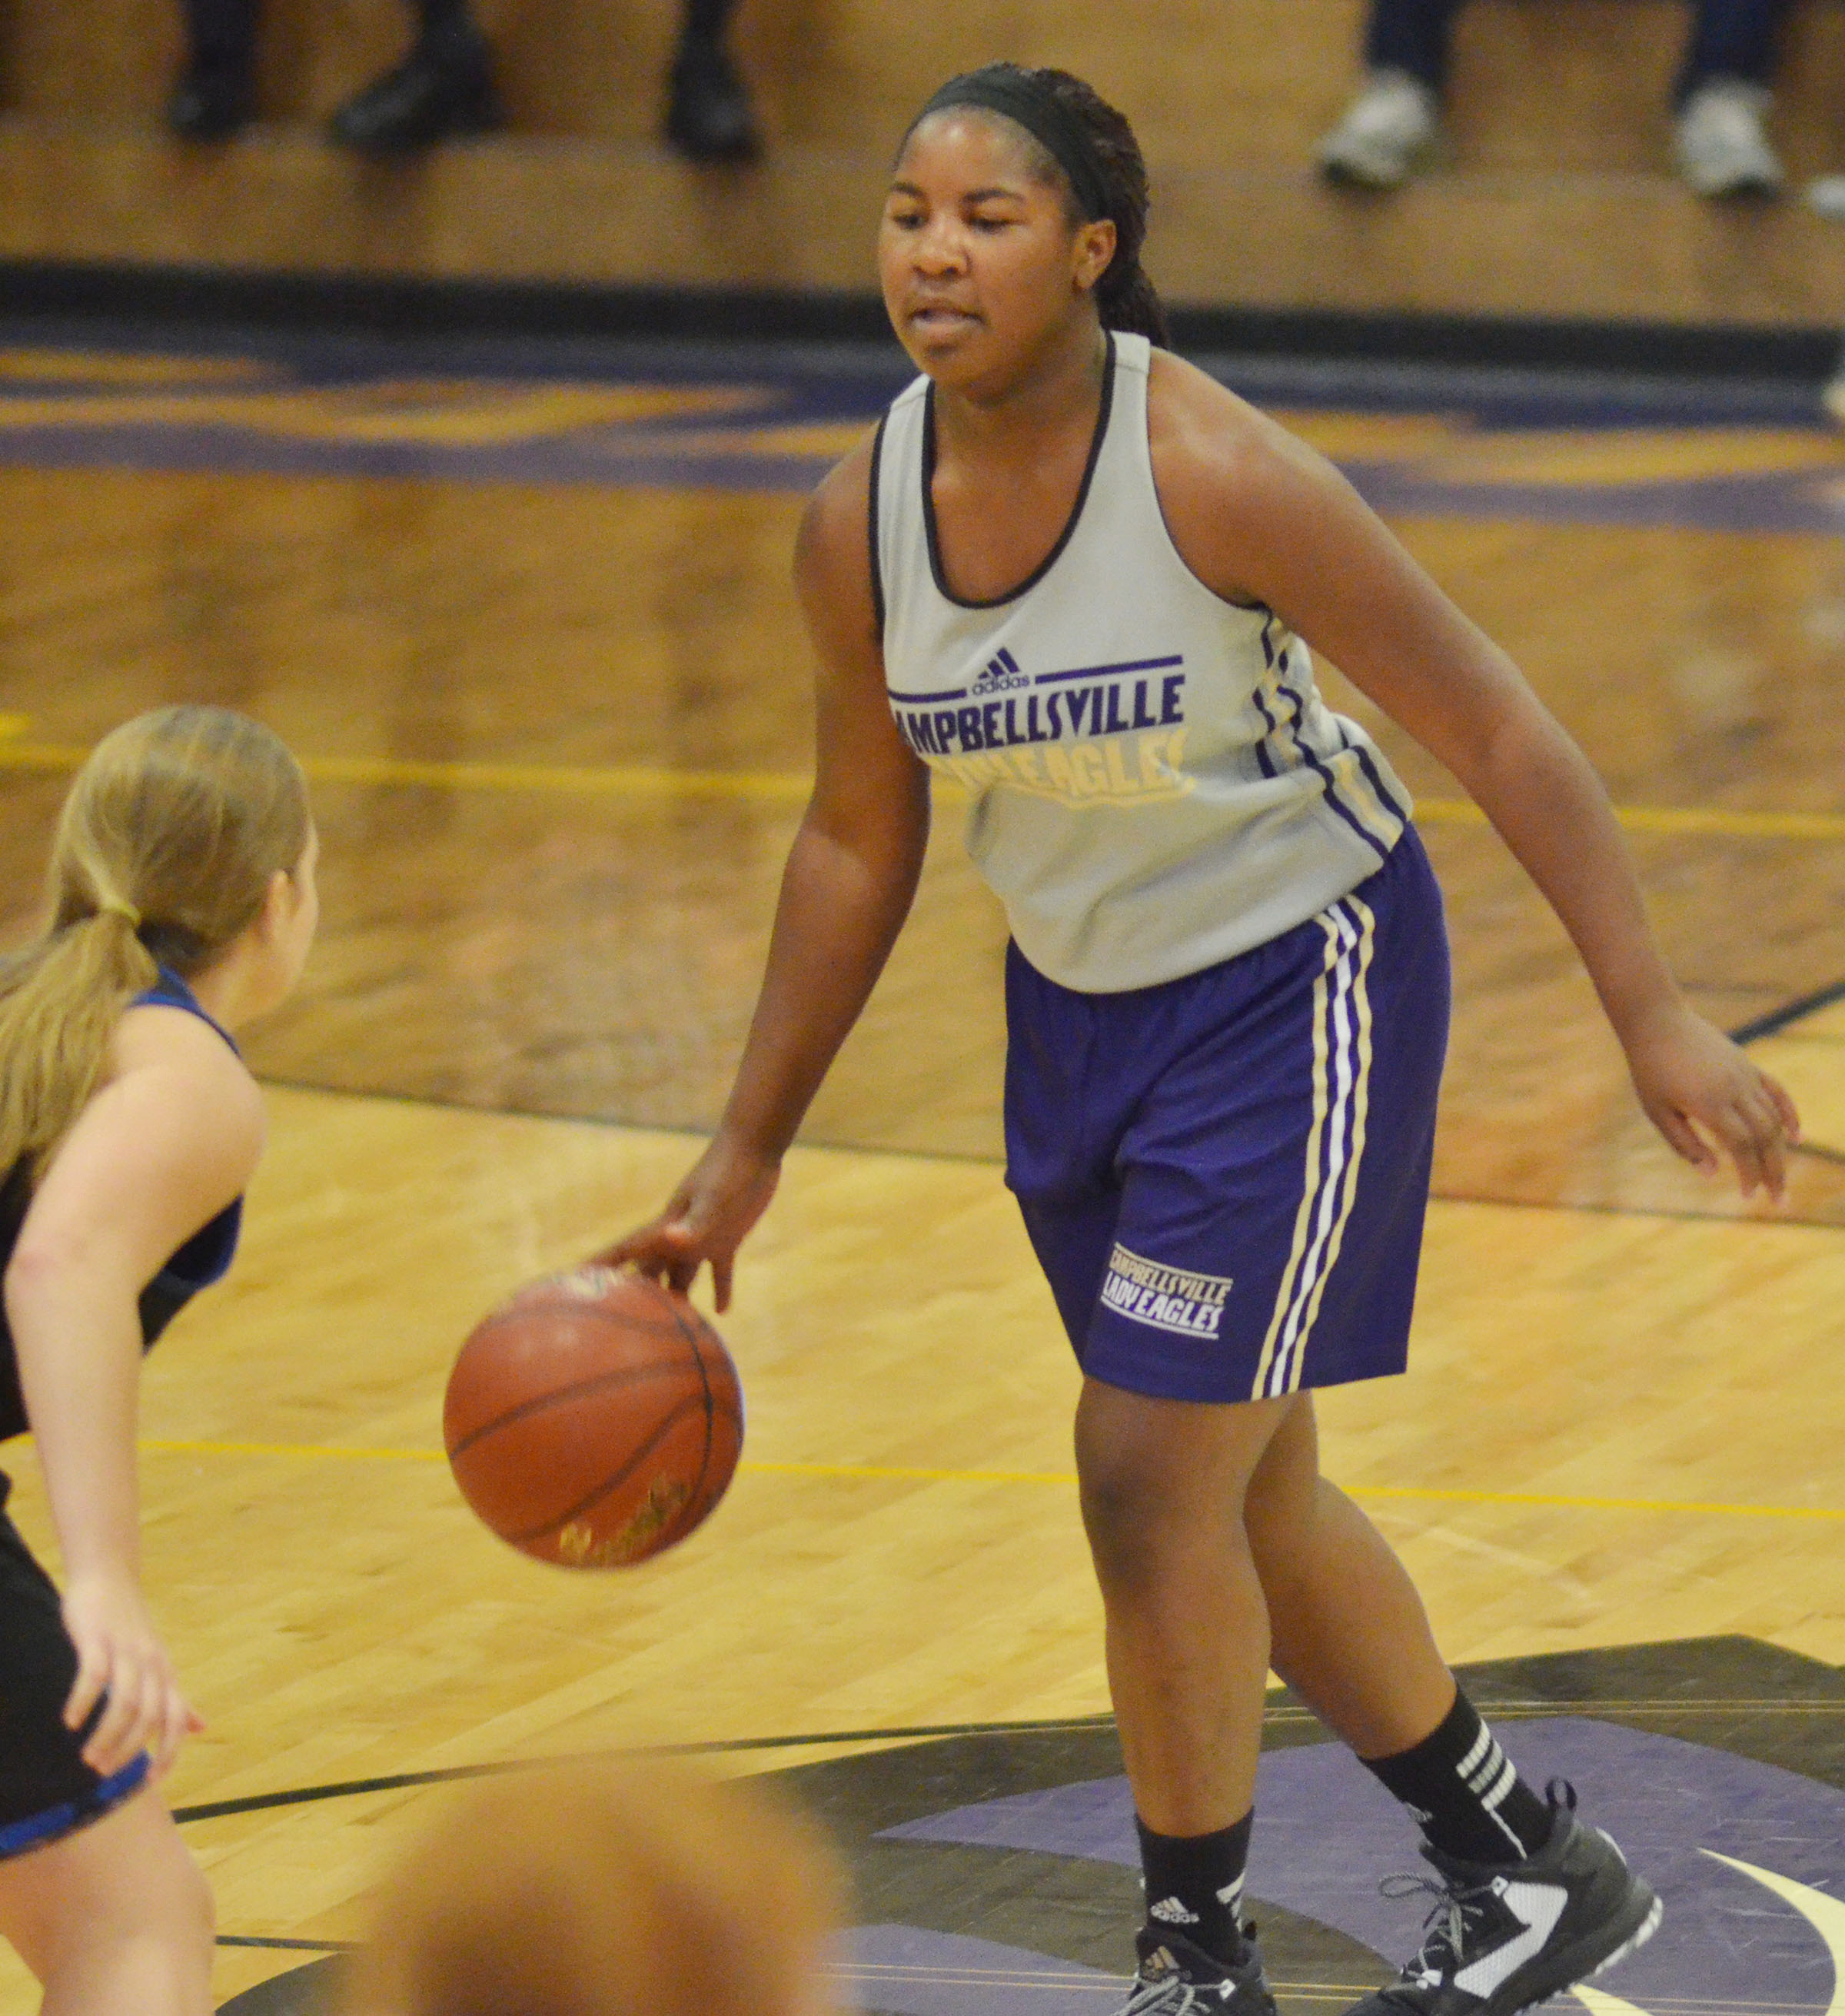 CHS junior Nena Barnett dribbles down the court.